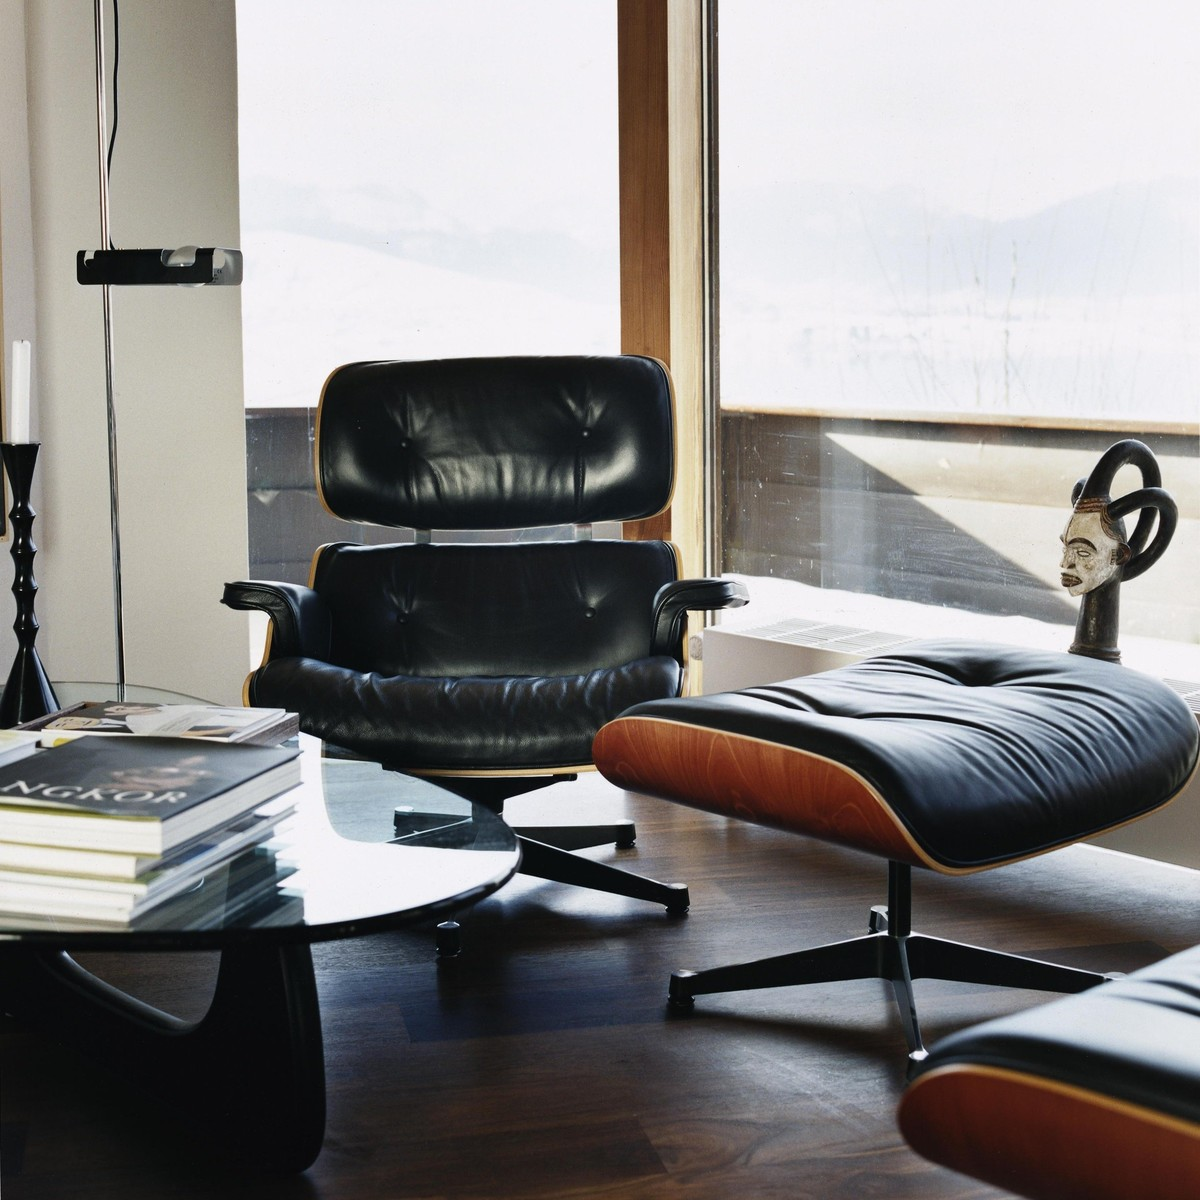 Eames lounge chair in room - Vitra Eames Lounge Chair Set Ltr Gratis